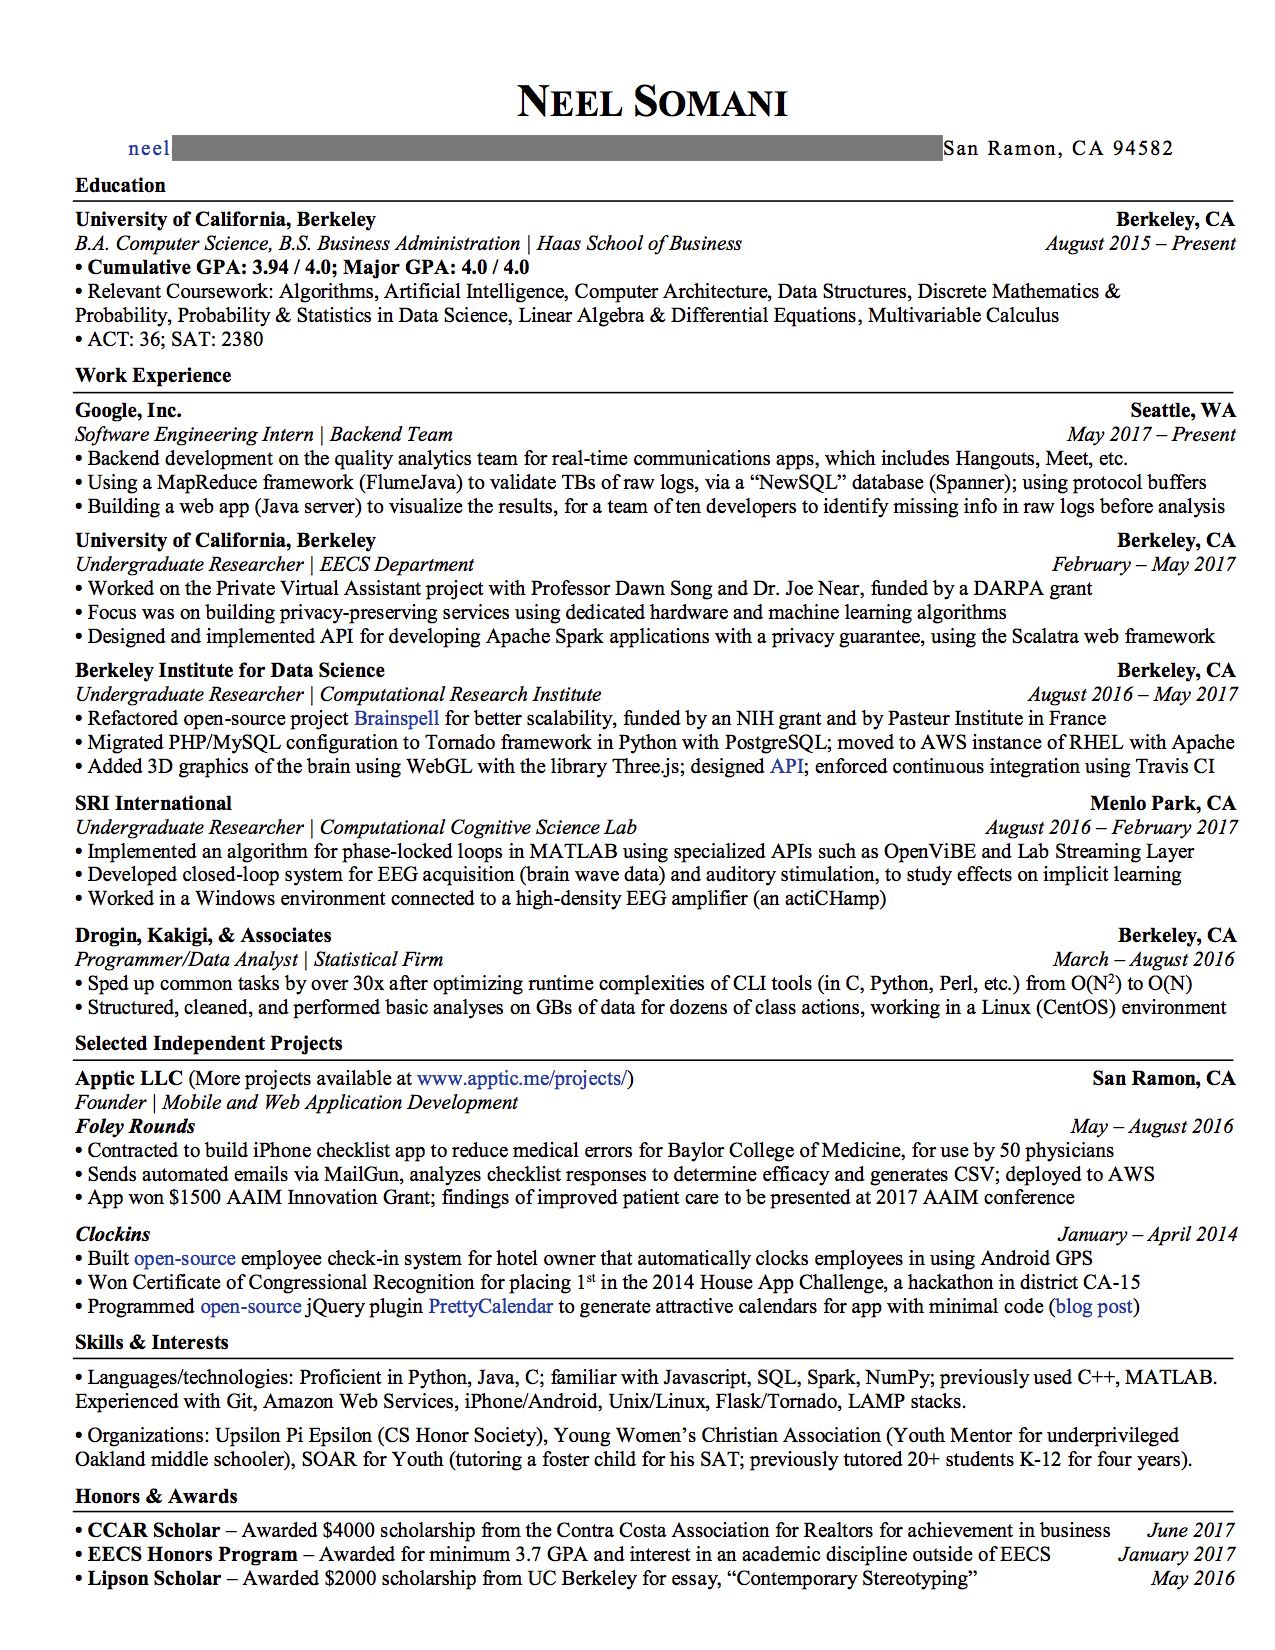 This Resume Got Me Internship Offers From Google Nsa More Student Resume Template Resume Examples Student Resume